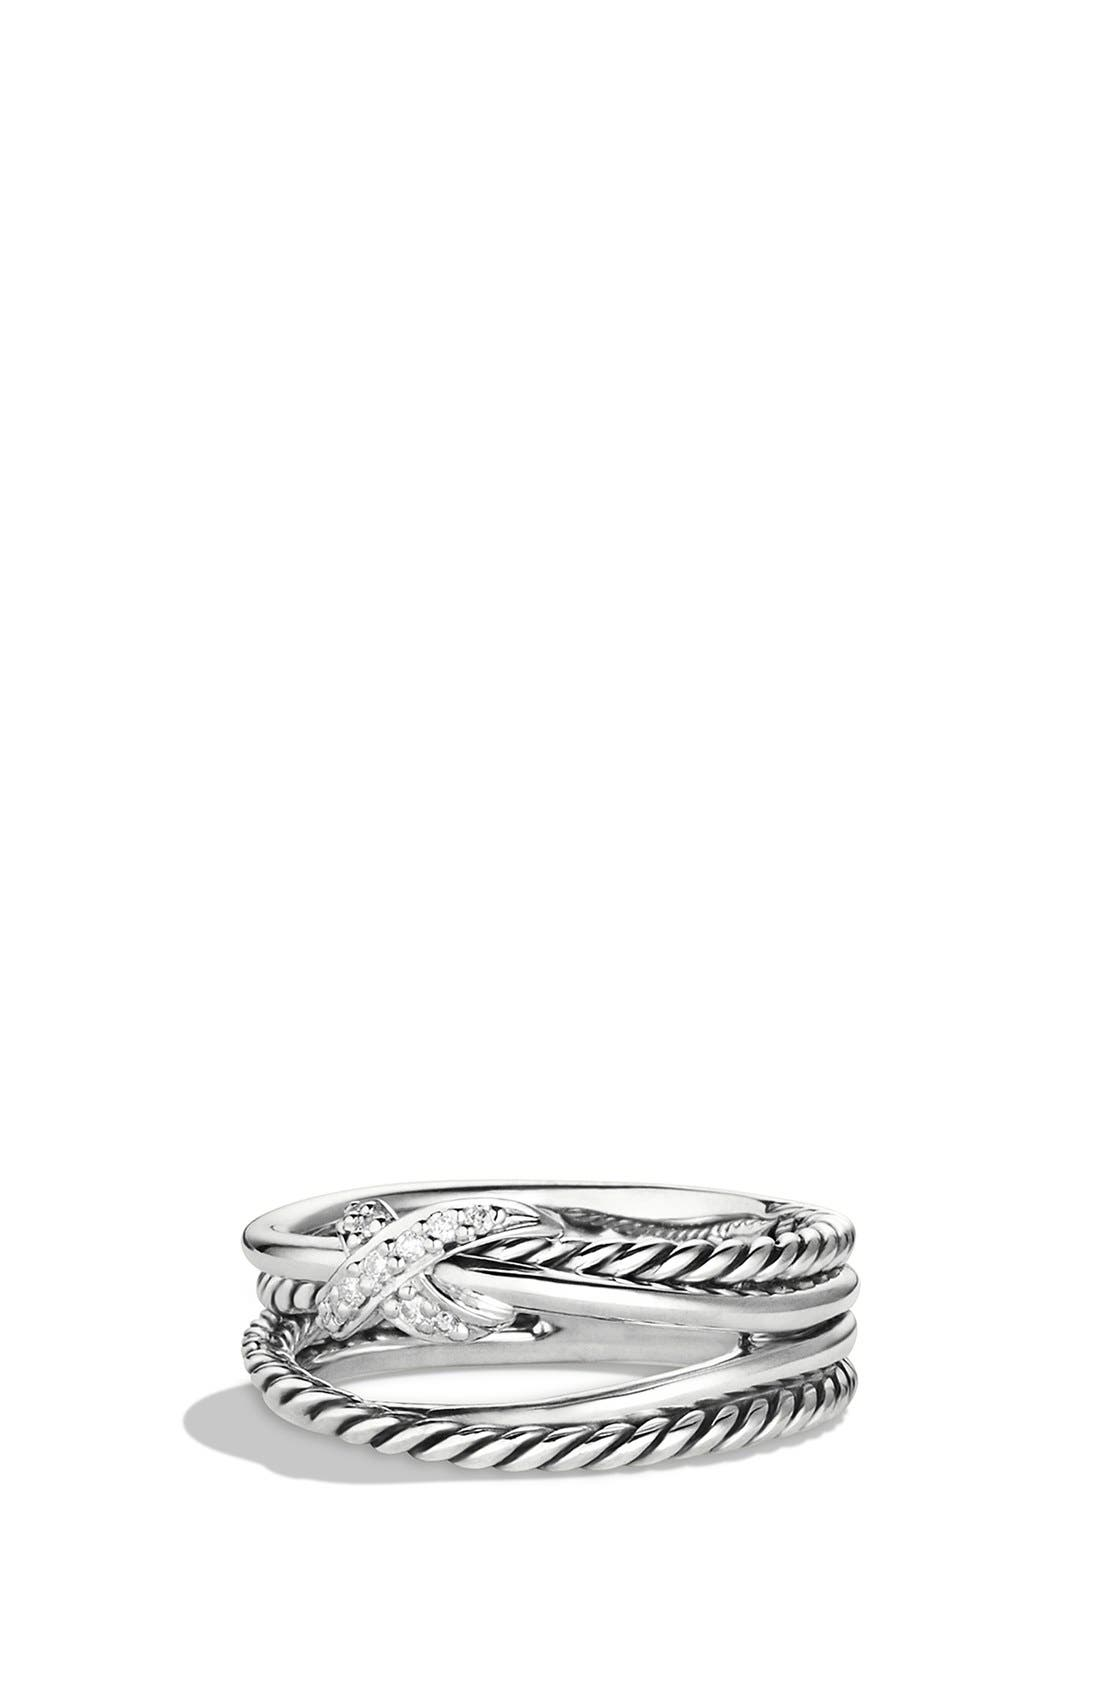 Alternate Image 1 Selected - David Yurman 'X Crossover' Ring with Diamonds